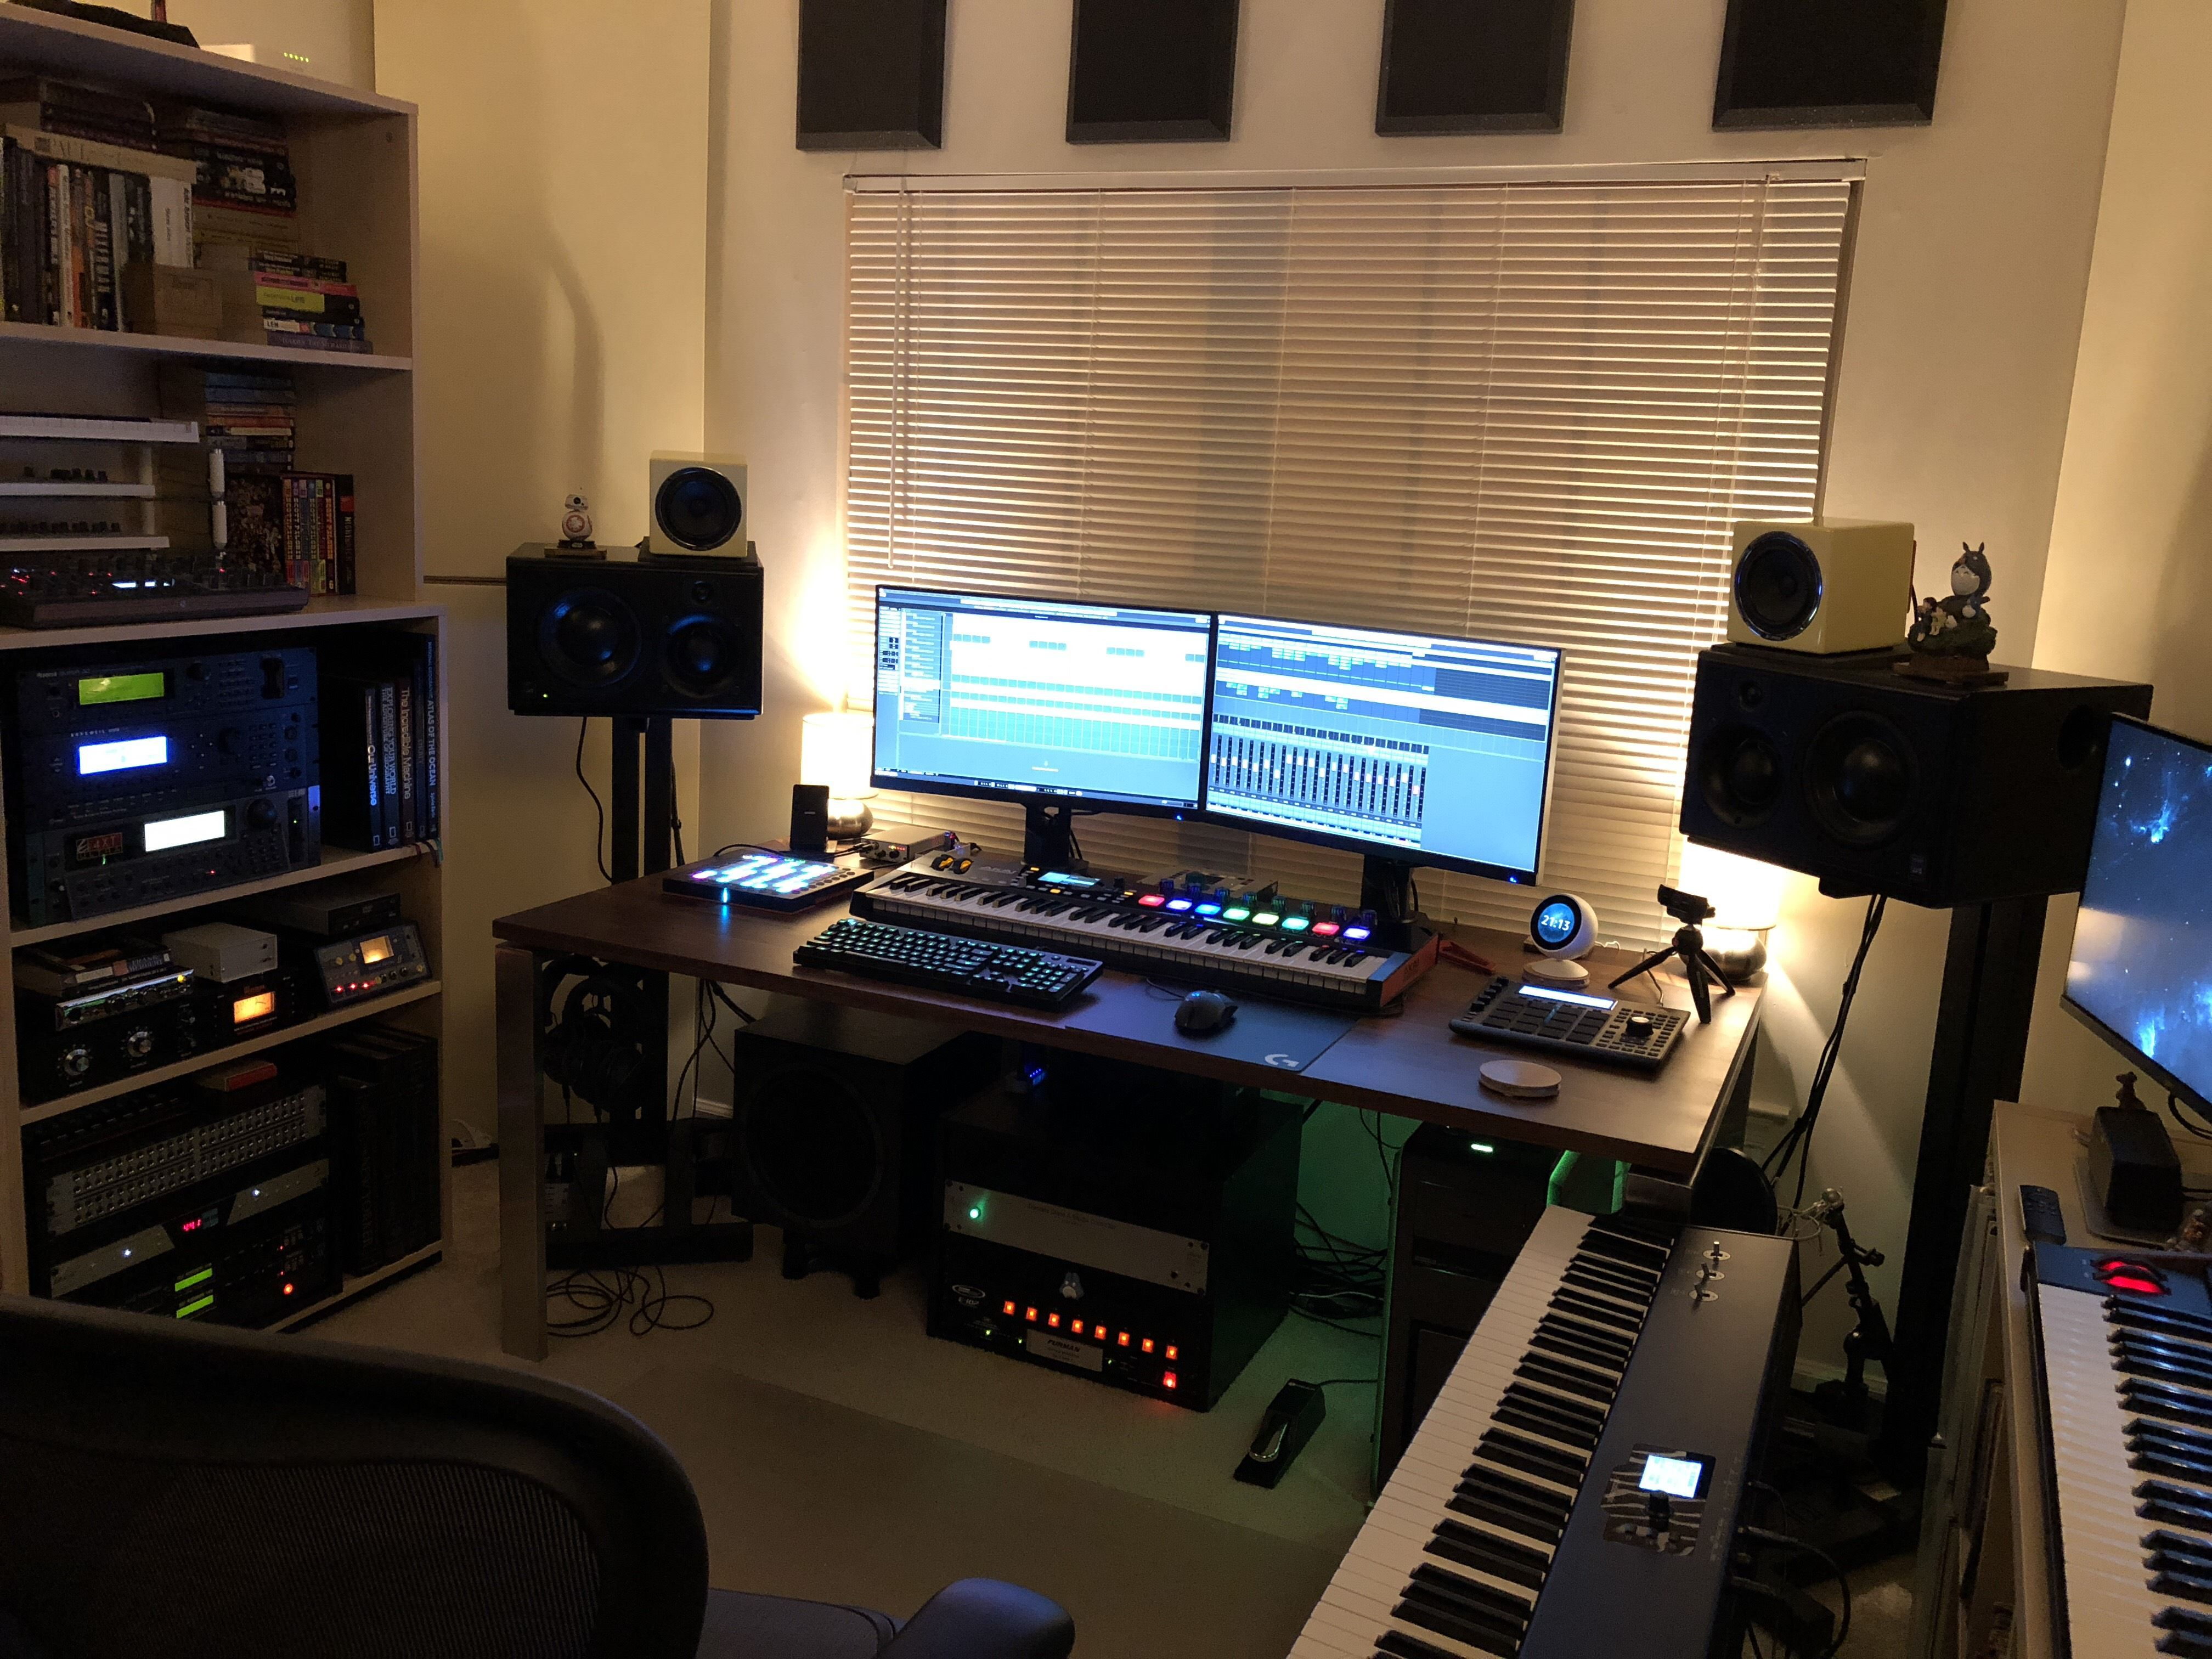 Finally Complete The Geeknest A Cozy Music Gaming Station Home Studio Music Home Studio Setup Music Studio Room